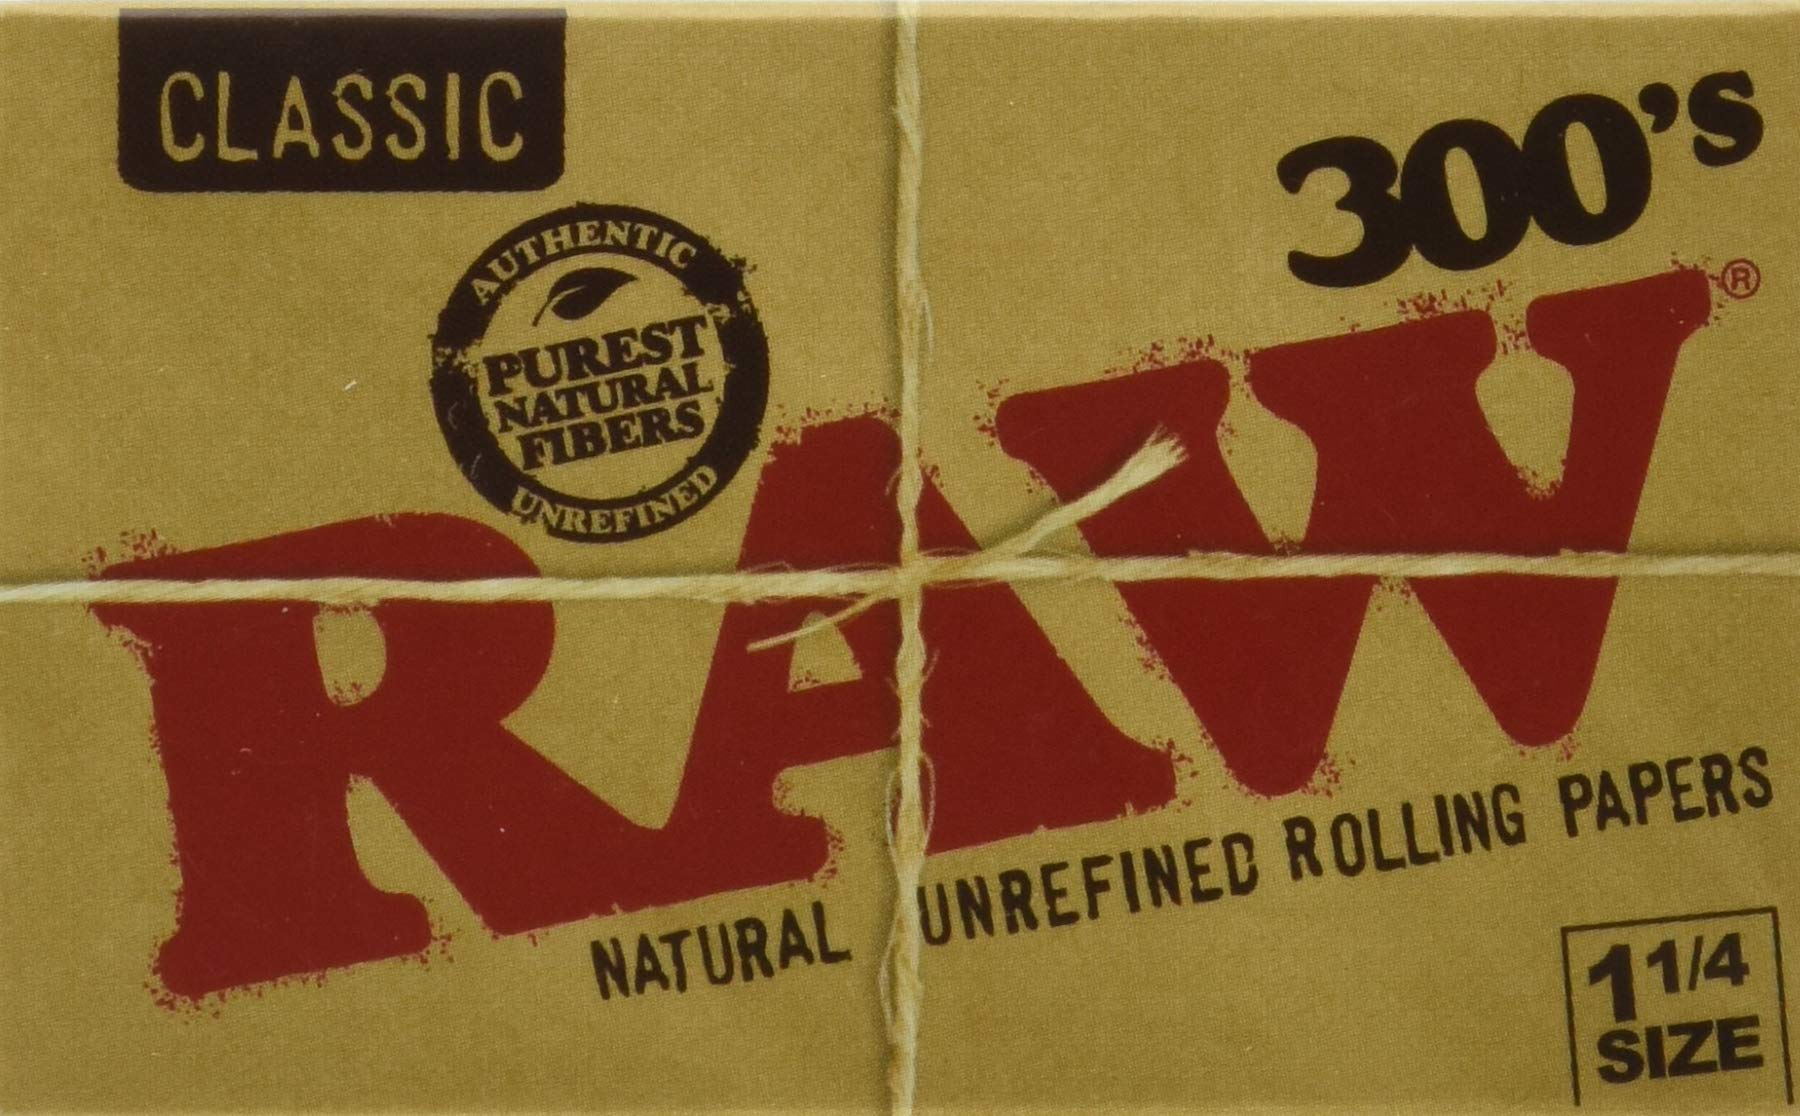 RAW 300 Classic 1.25 1 1/4 Size Rolling Papers, 300 Count (Pack of 1)